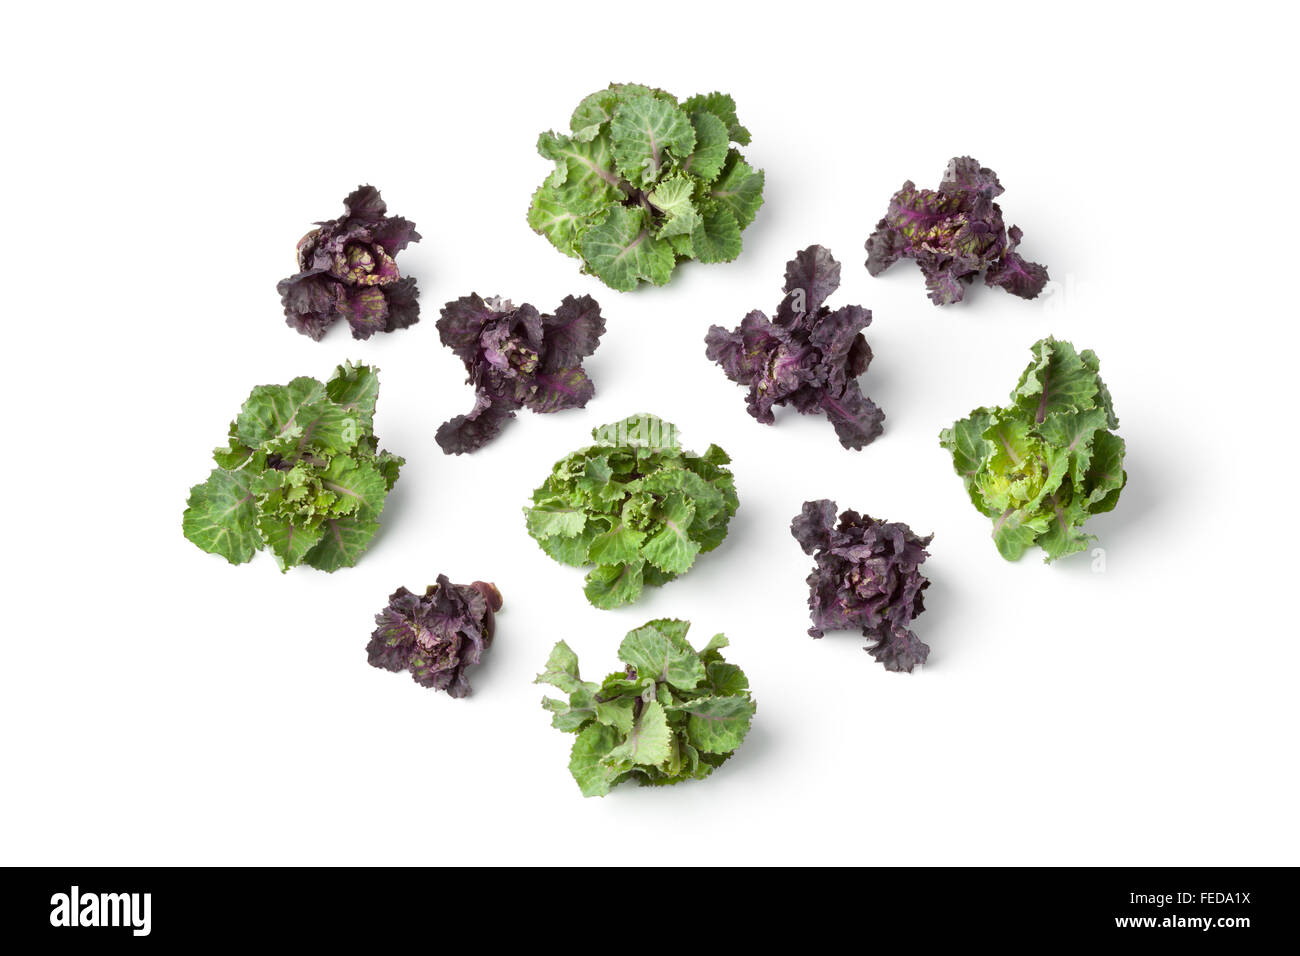 Fresh red and green flower sprouts on white background - Stock Image